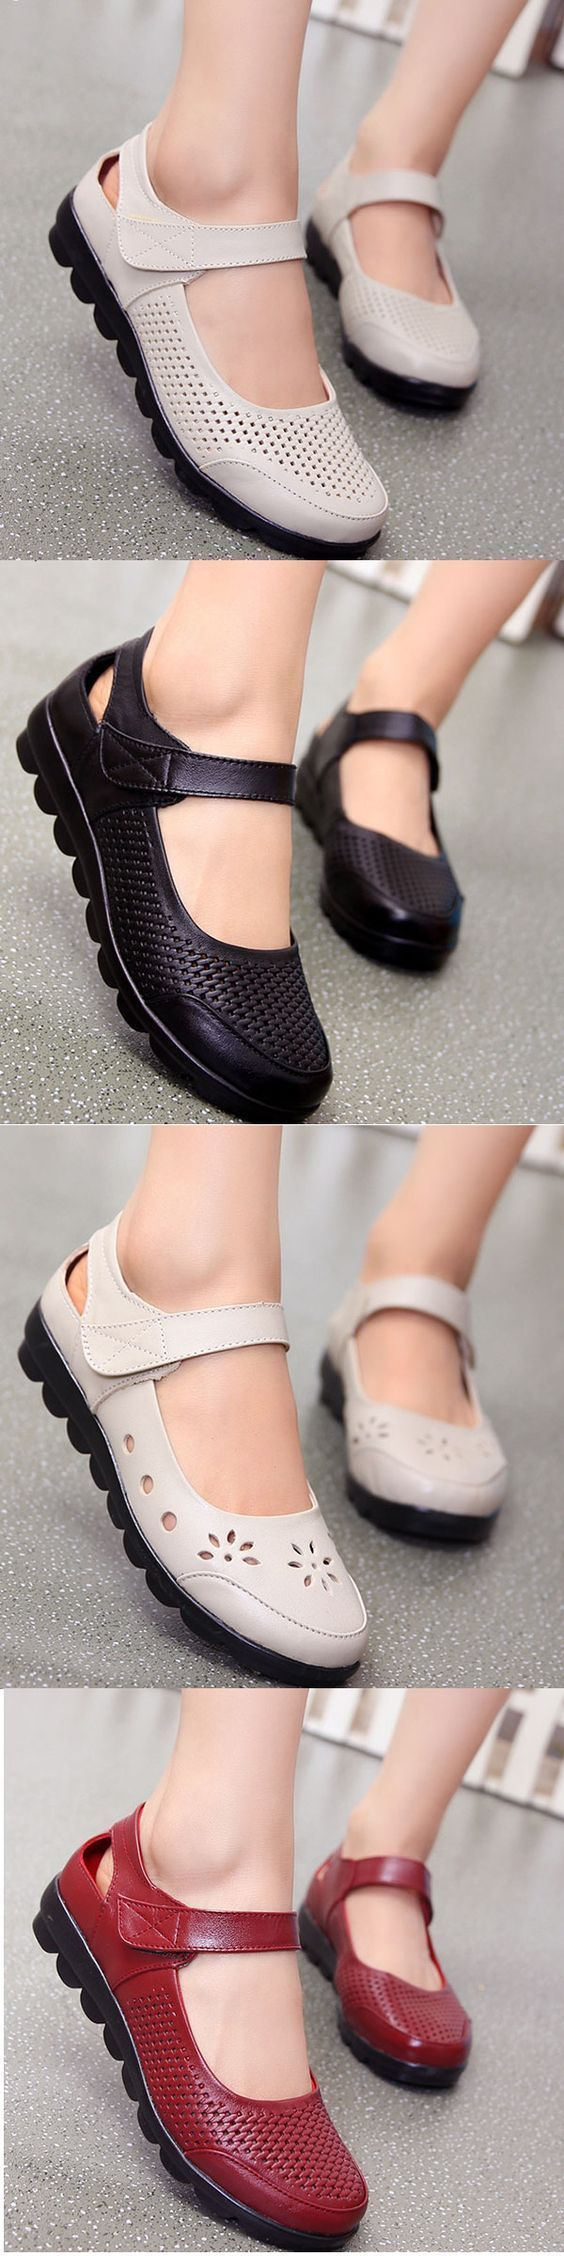 Wide Socofy Shoes